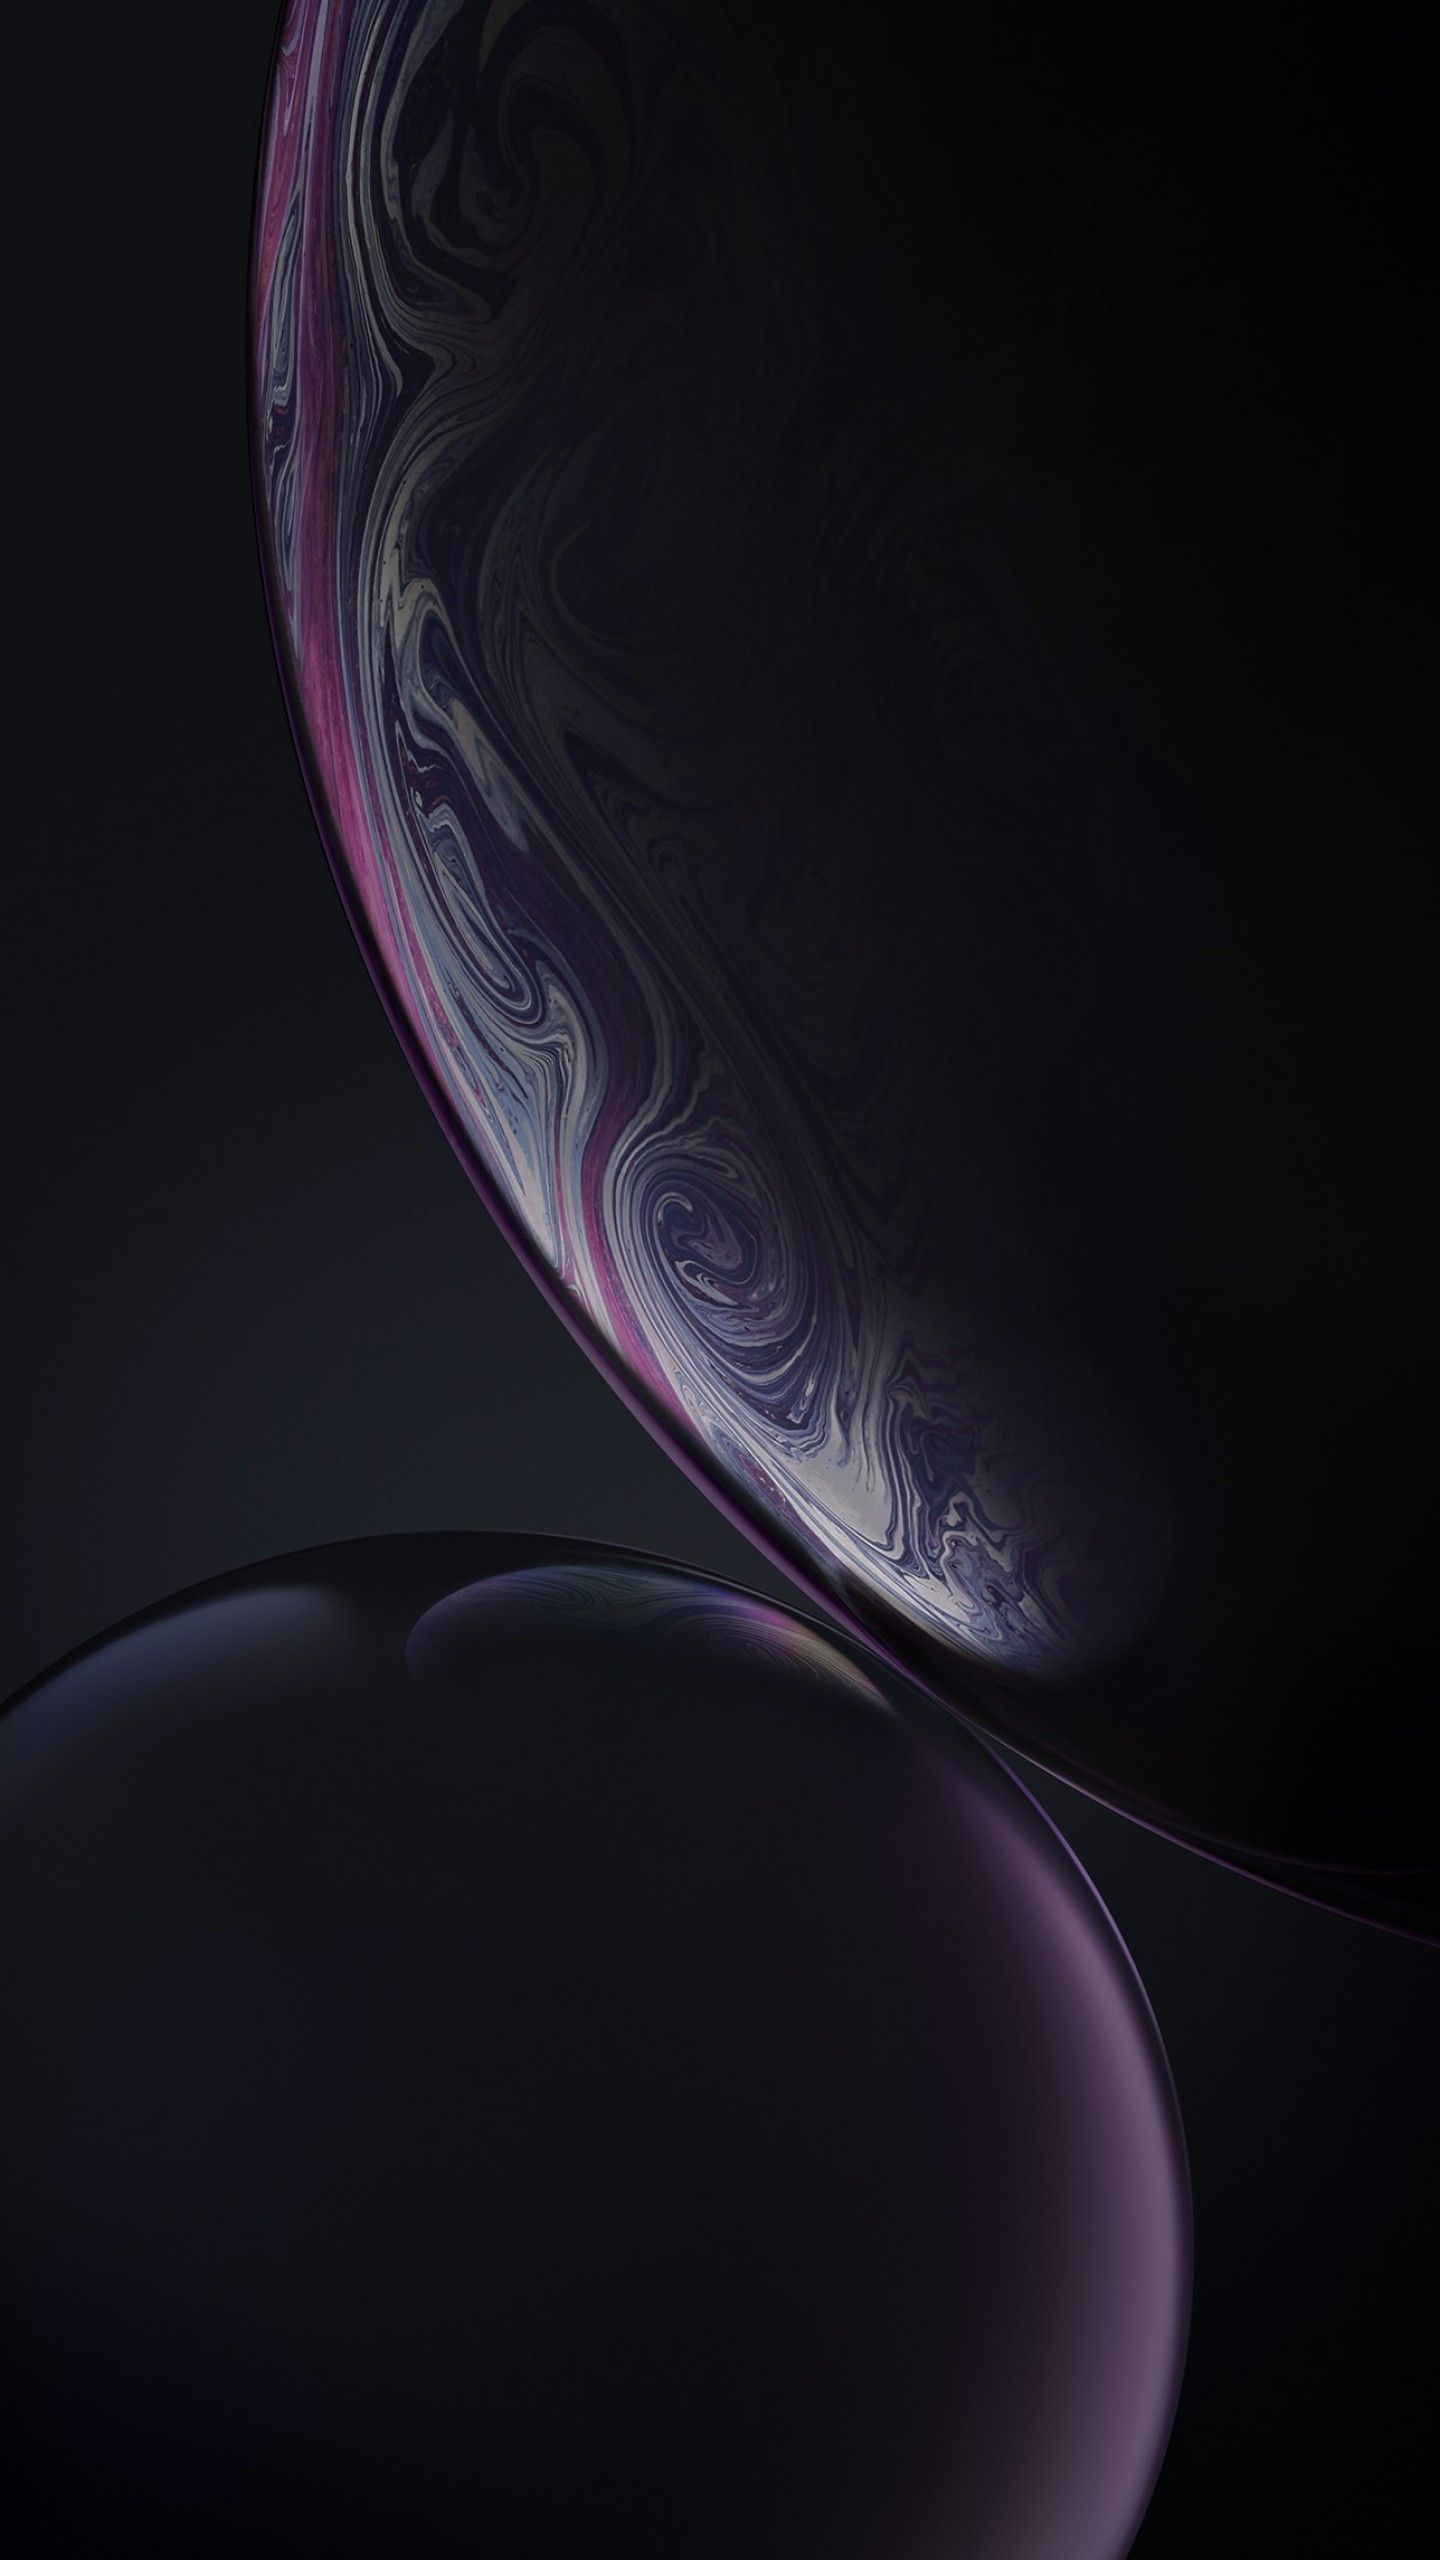 Cool Wallpapers Iphone 12